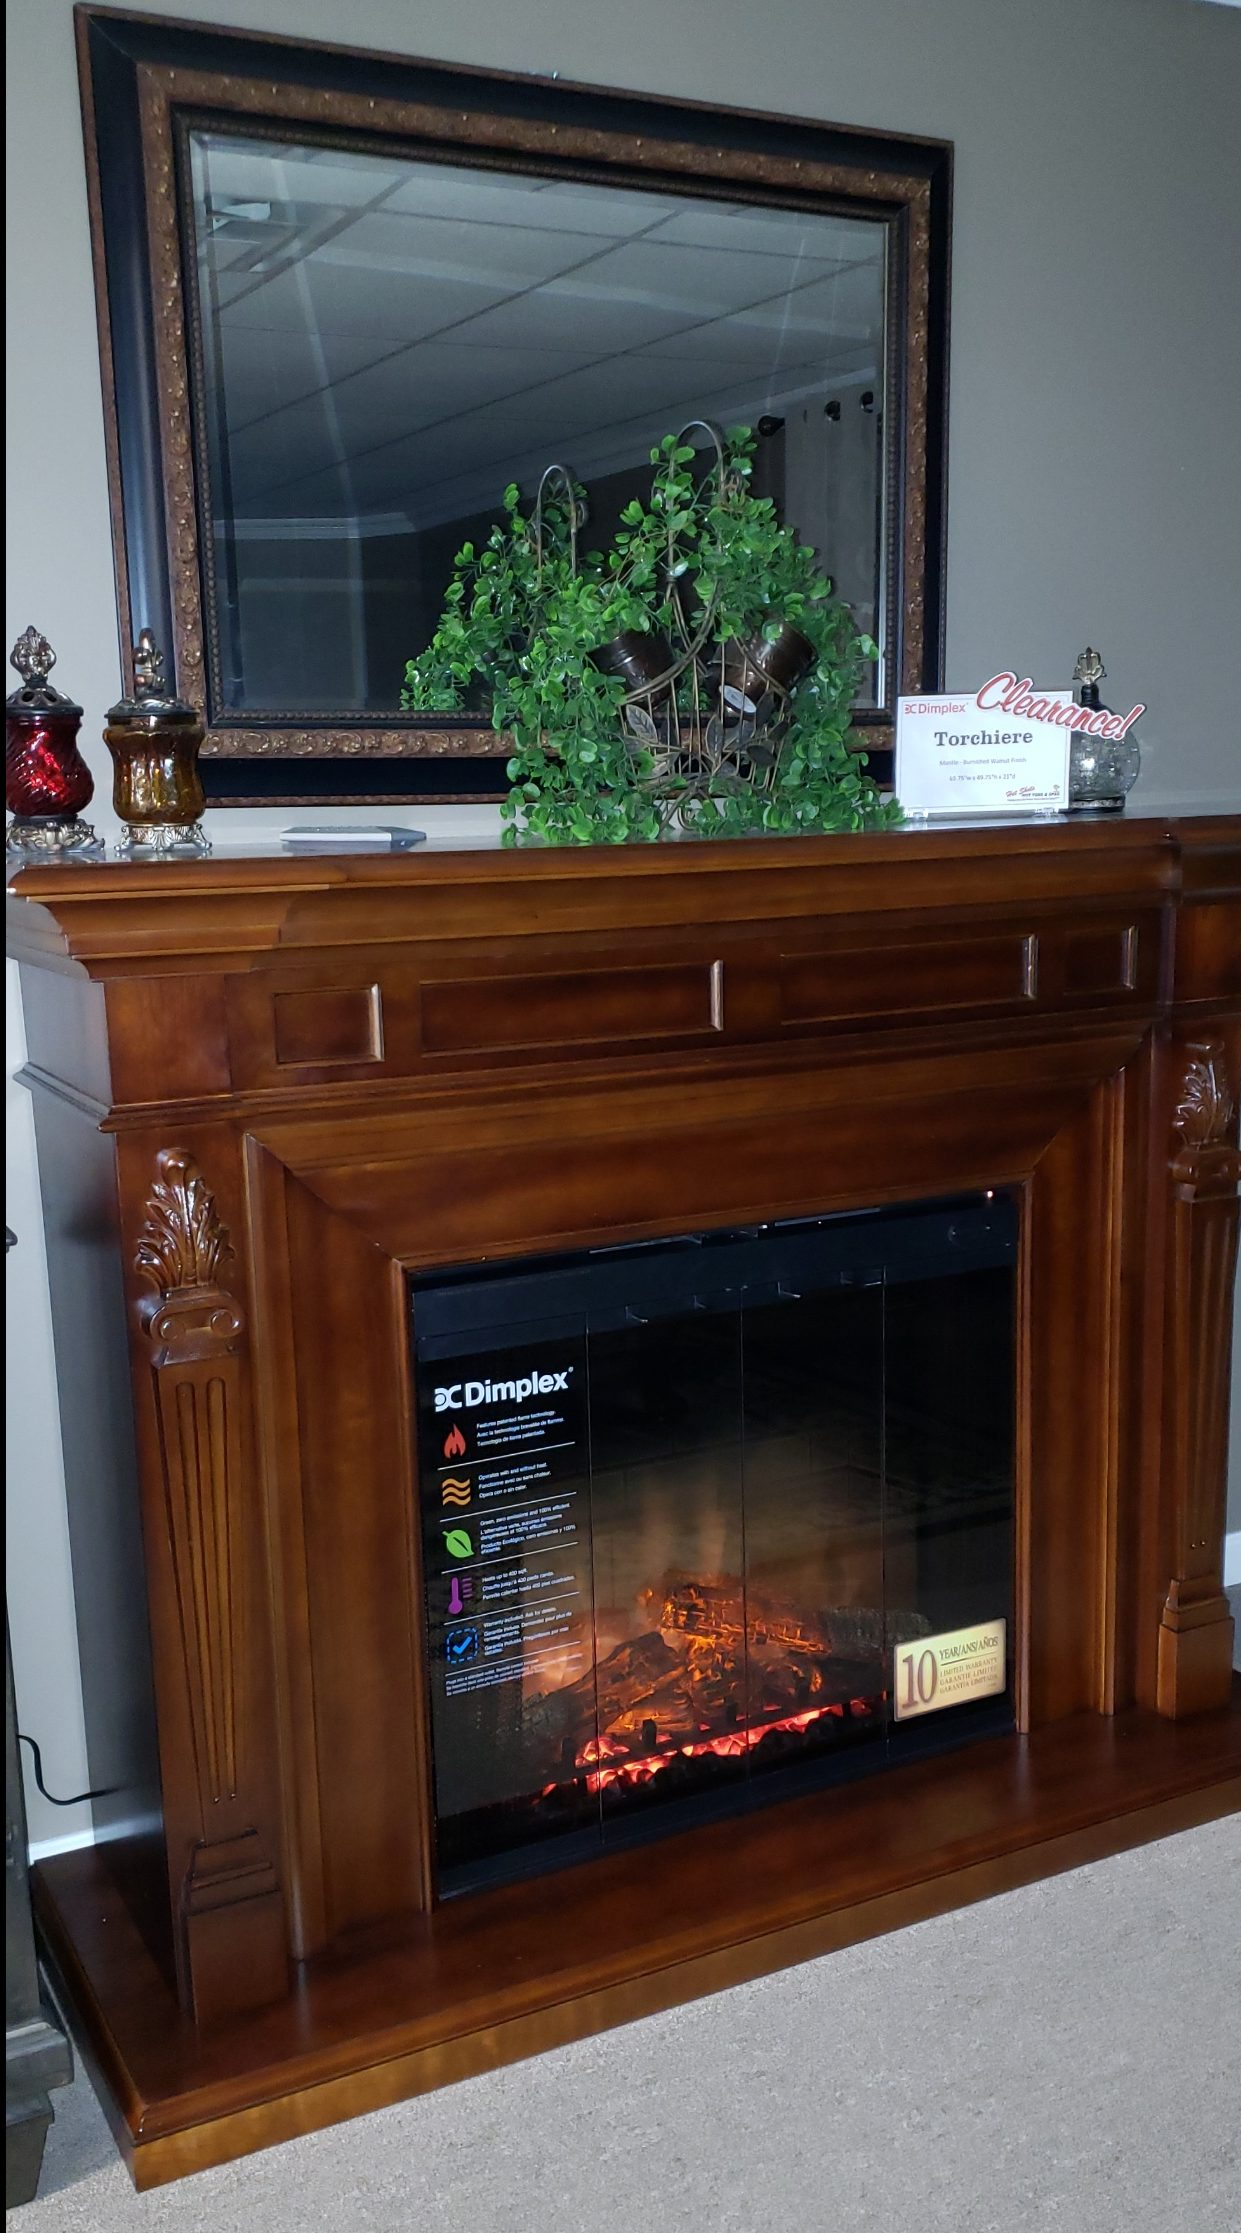 Clearance on Dimplex Electric Fireplaces – click for more photos!